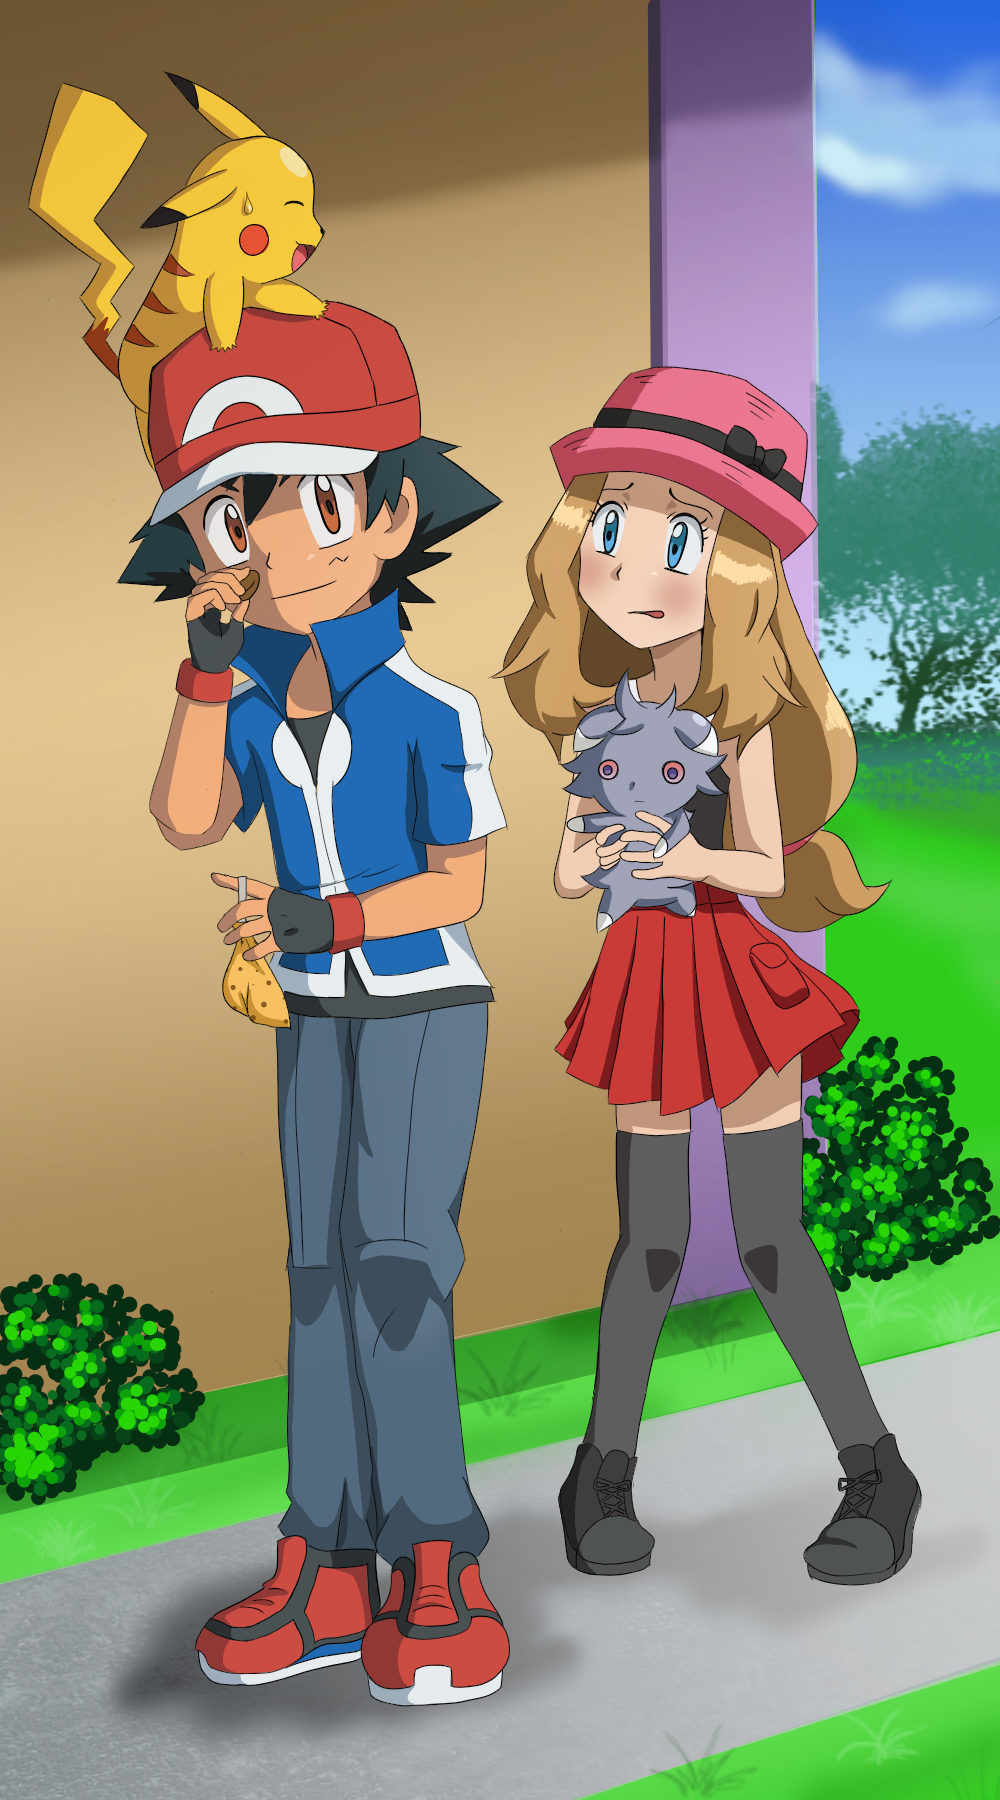 Rq5 Ash And Serena By Floisonkeya On Deviantart